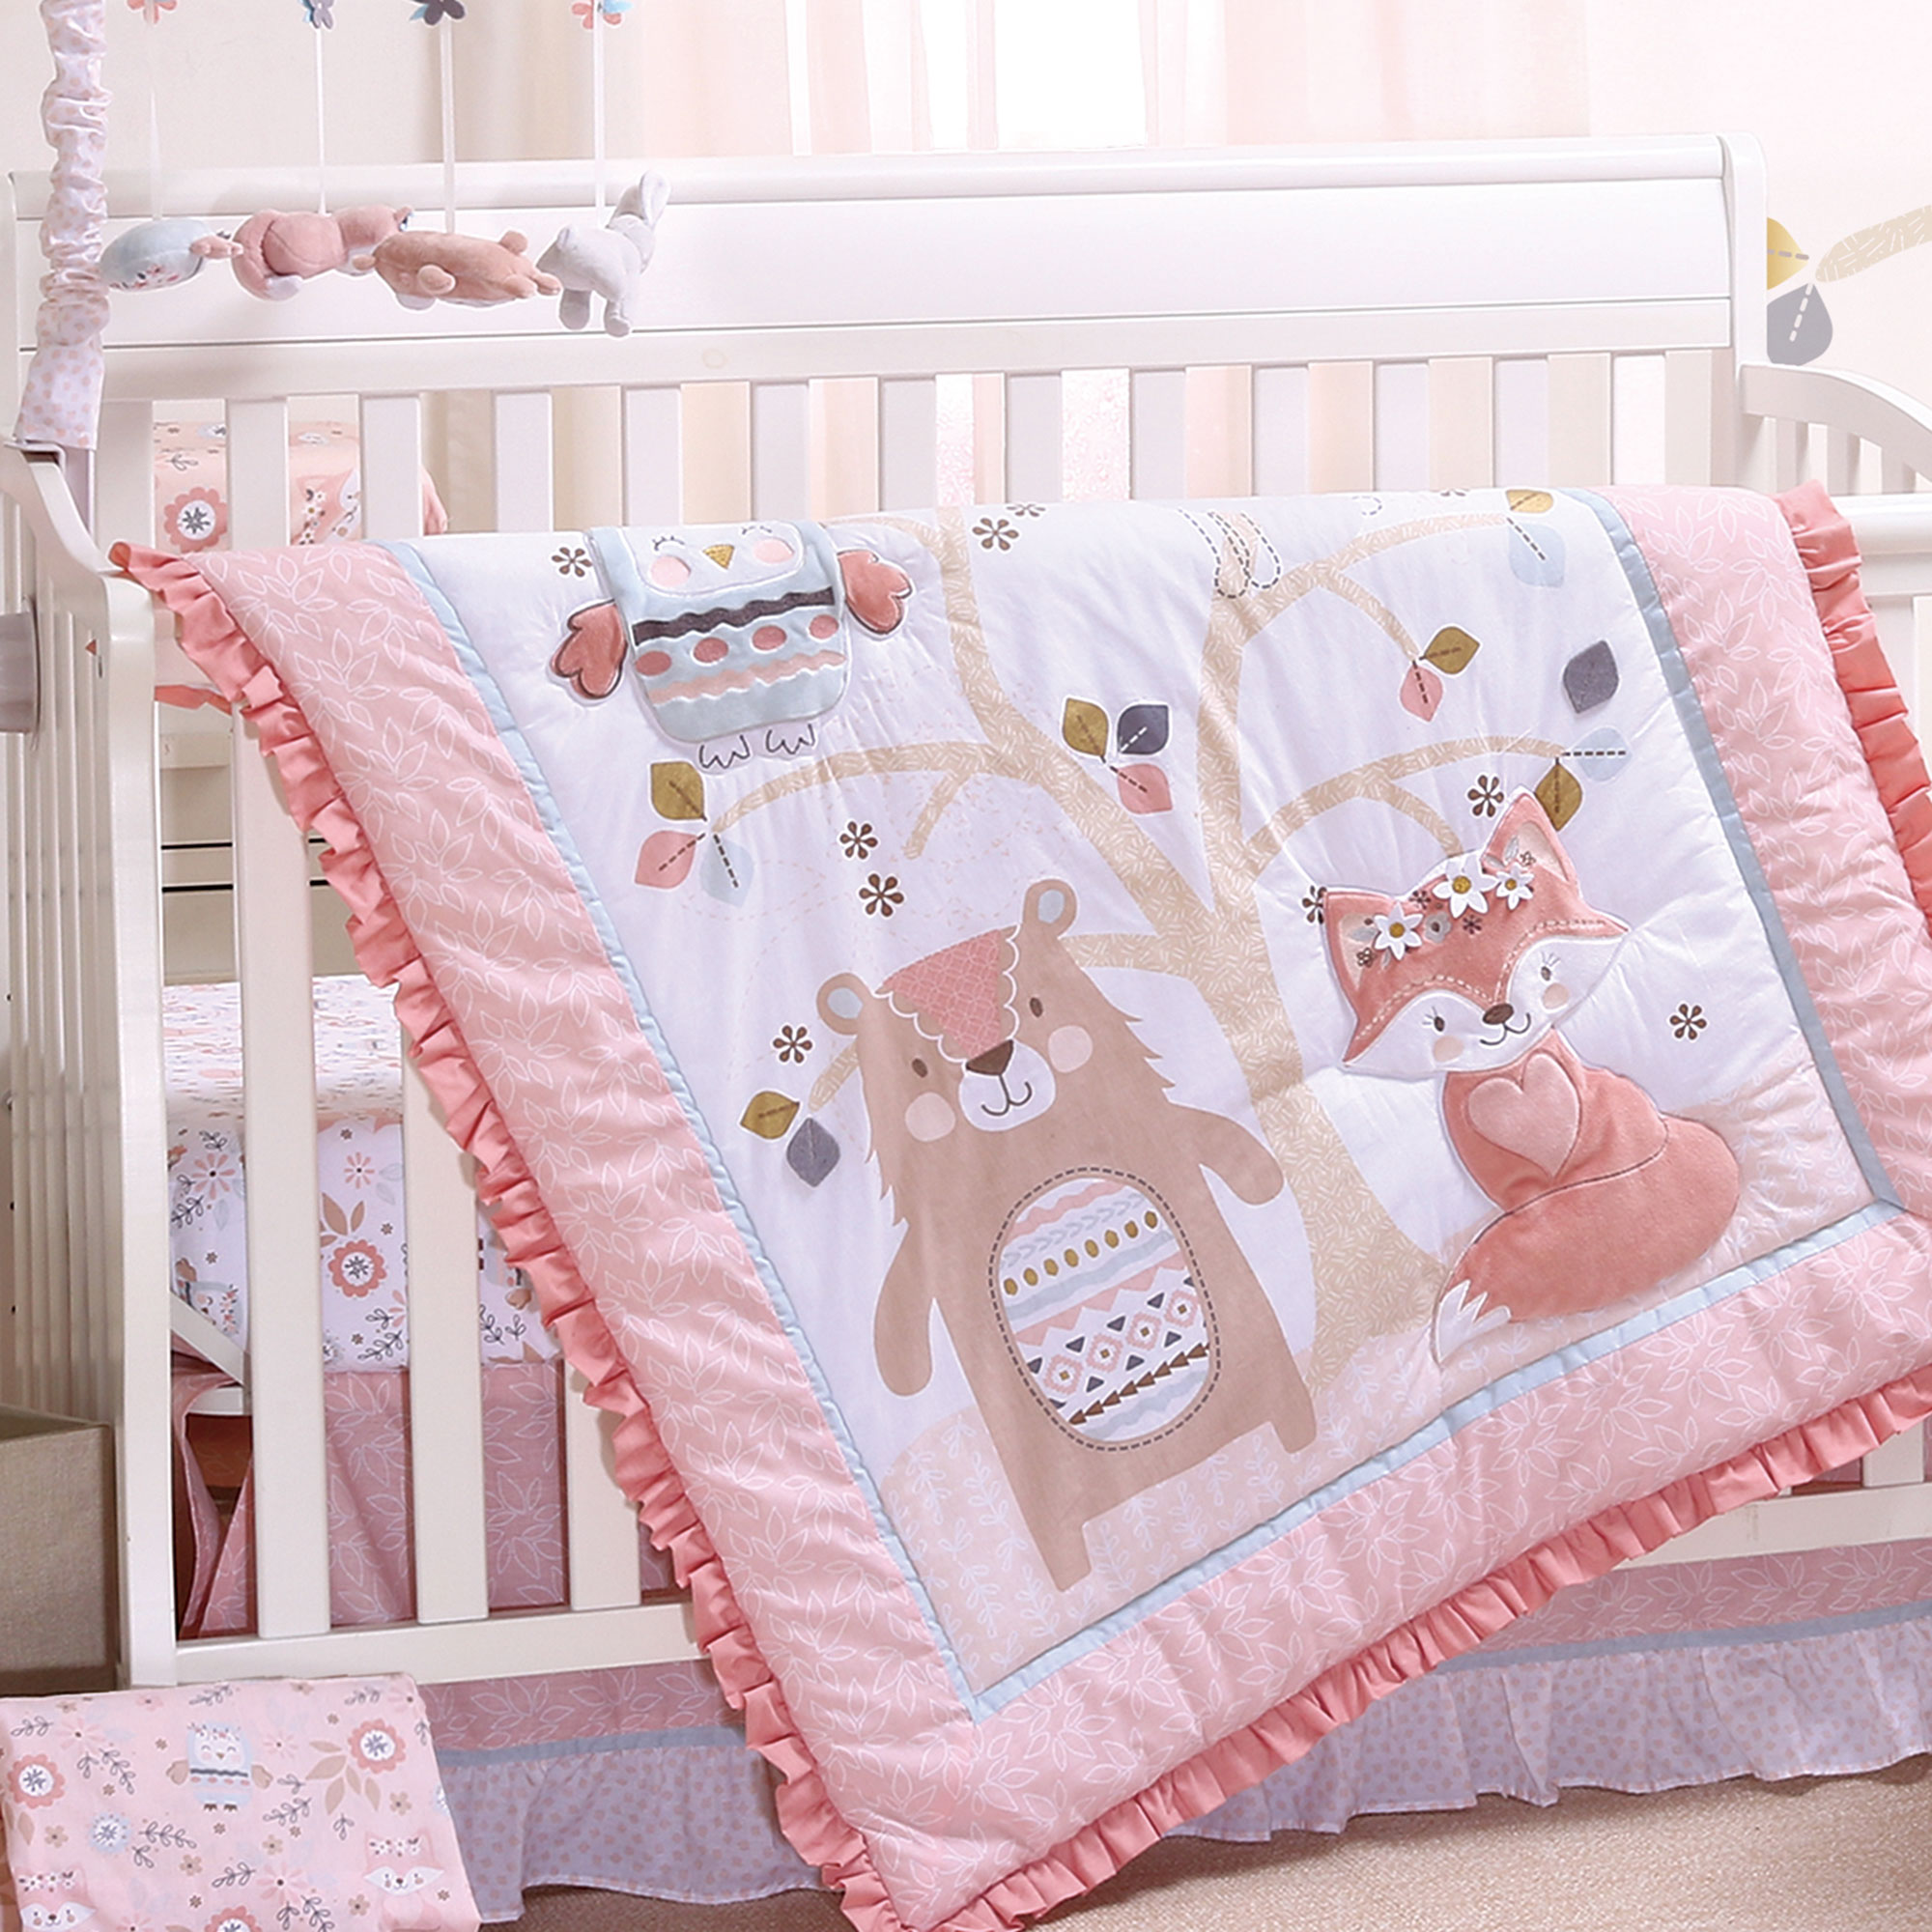 ae0fa8e9a7035 Details about Woodland Friends 4 Piece Forest Animal Girl Baby Crib Bedding  Set - Rose Pink